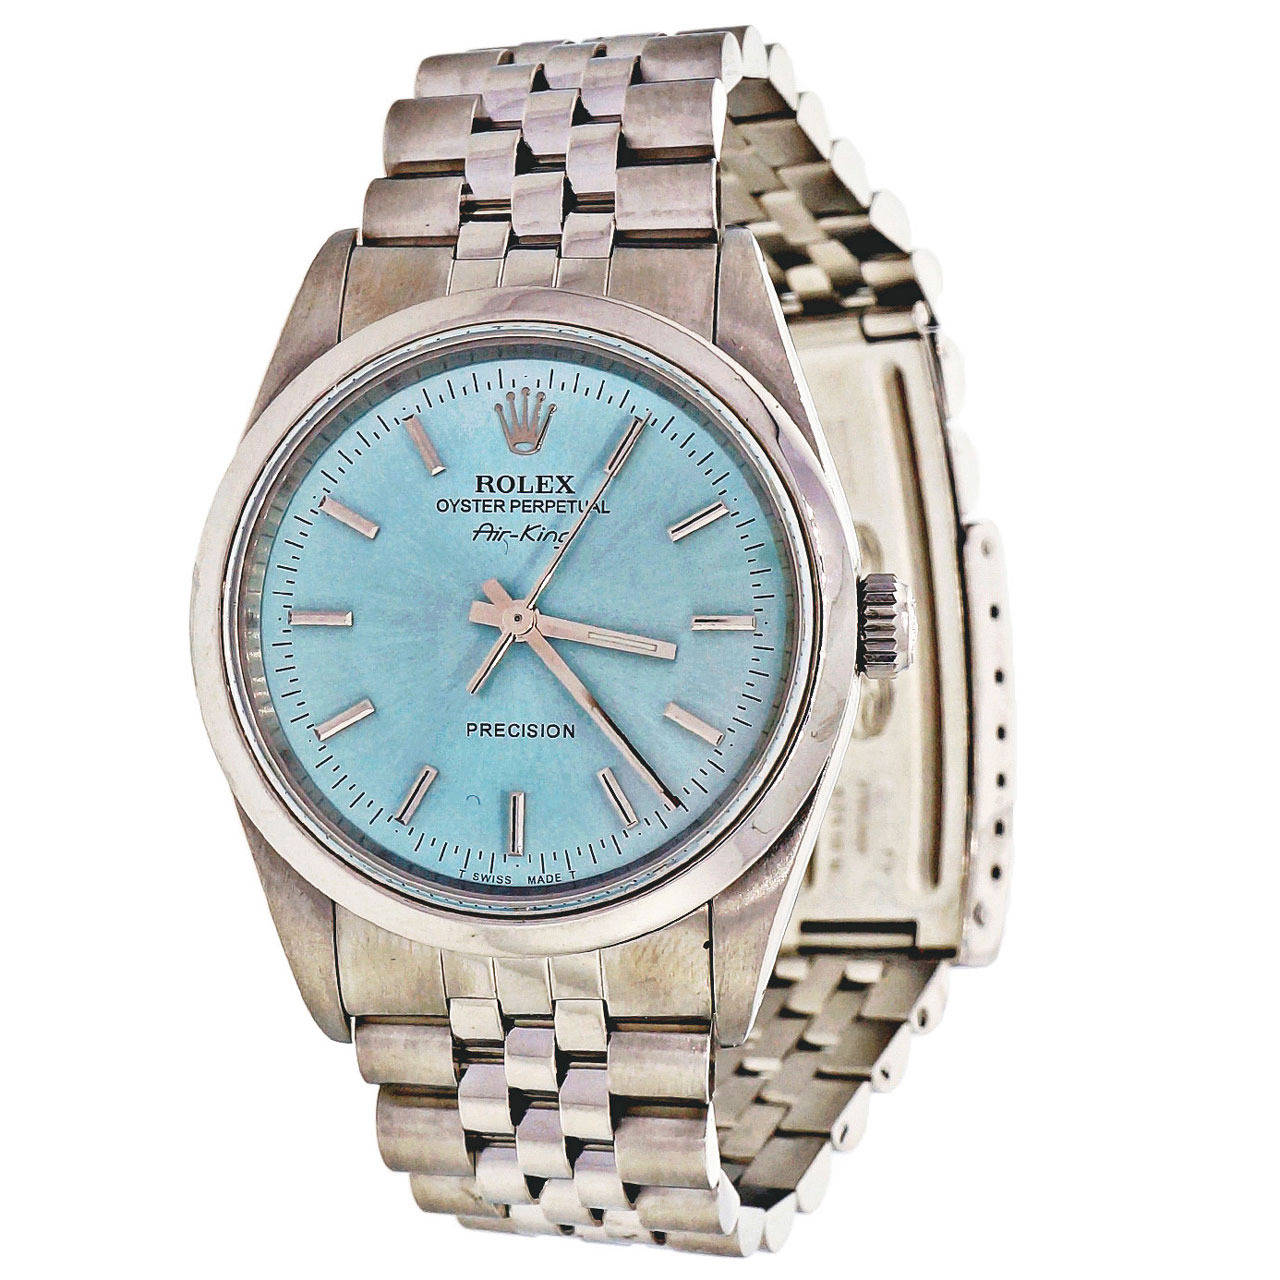 Rolex Stainless Steel Oyster Perpetual Air King Wristwatch Ref 14000 1